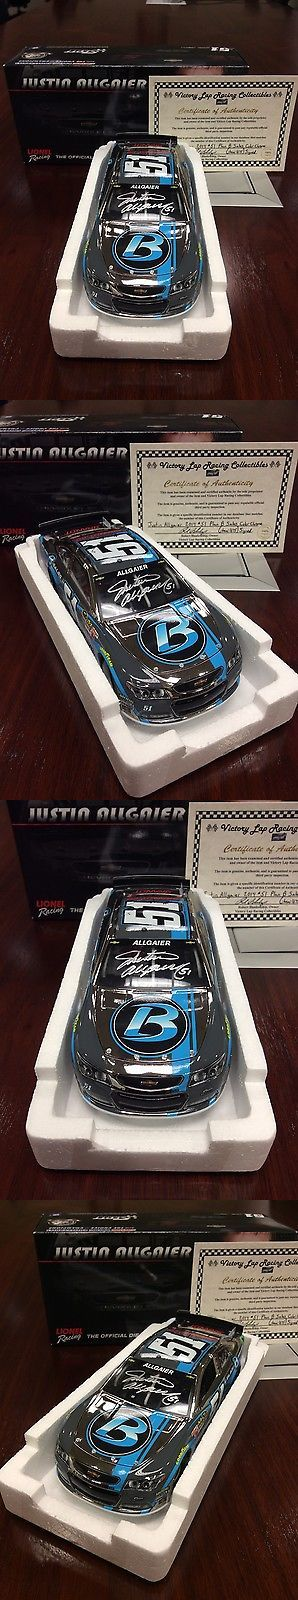 Other Diecast Racing Cars 45354: 2014 Justin Allgaier Autographed #51 Plan B Sales Color Chrome 1:24 Diecast Wcoa -> BUY IT NOW ONLY: $90 on eBay!